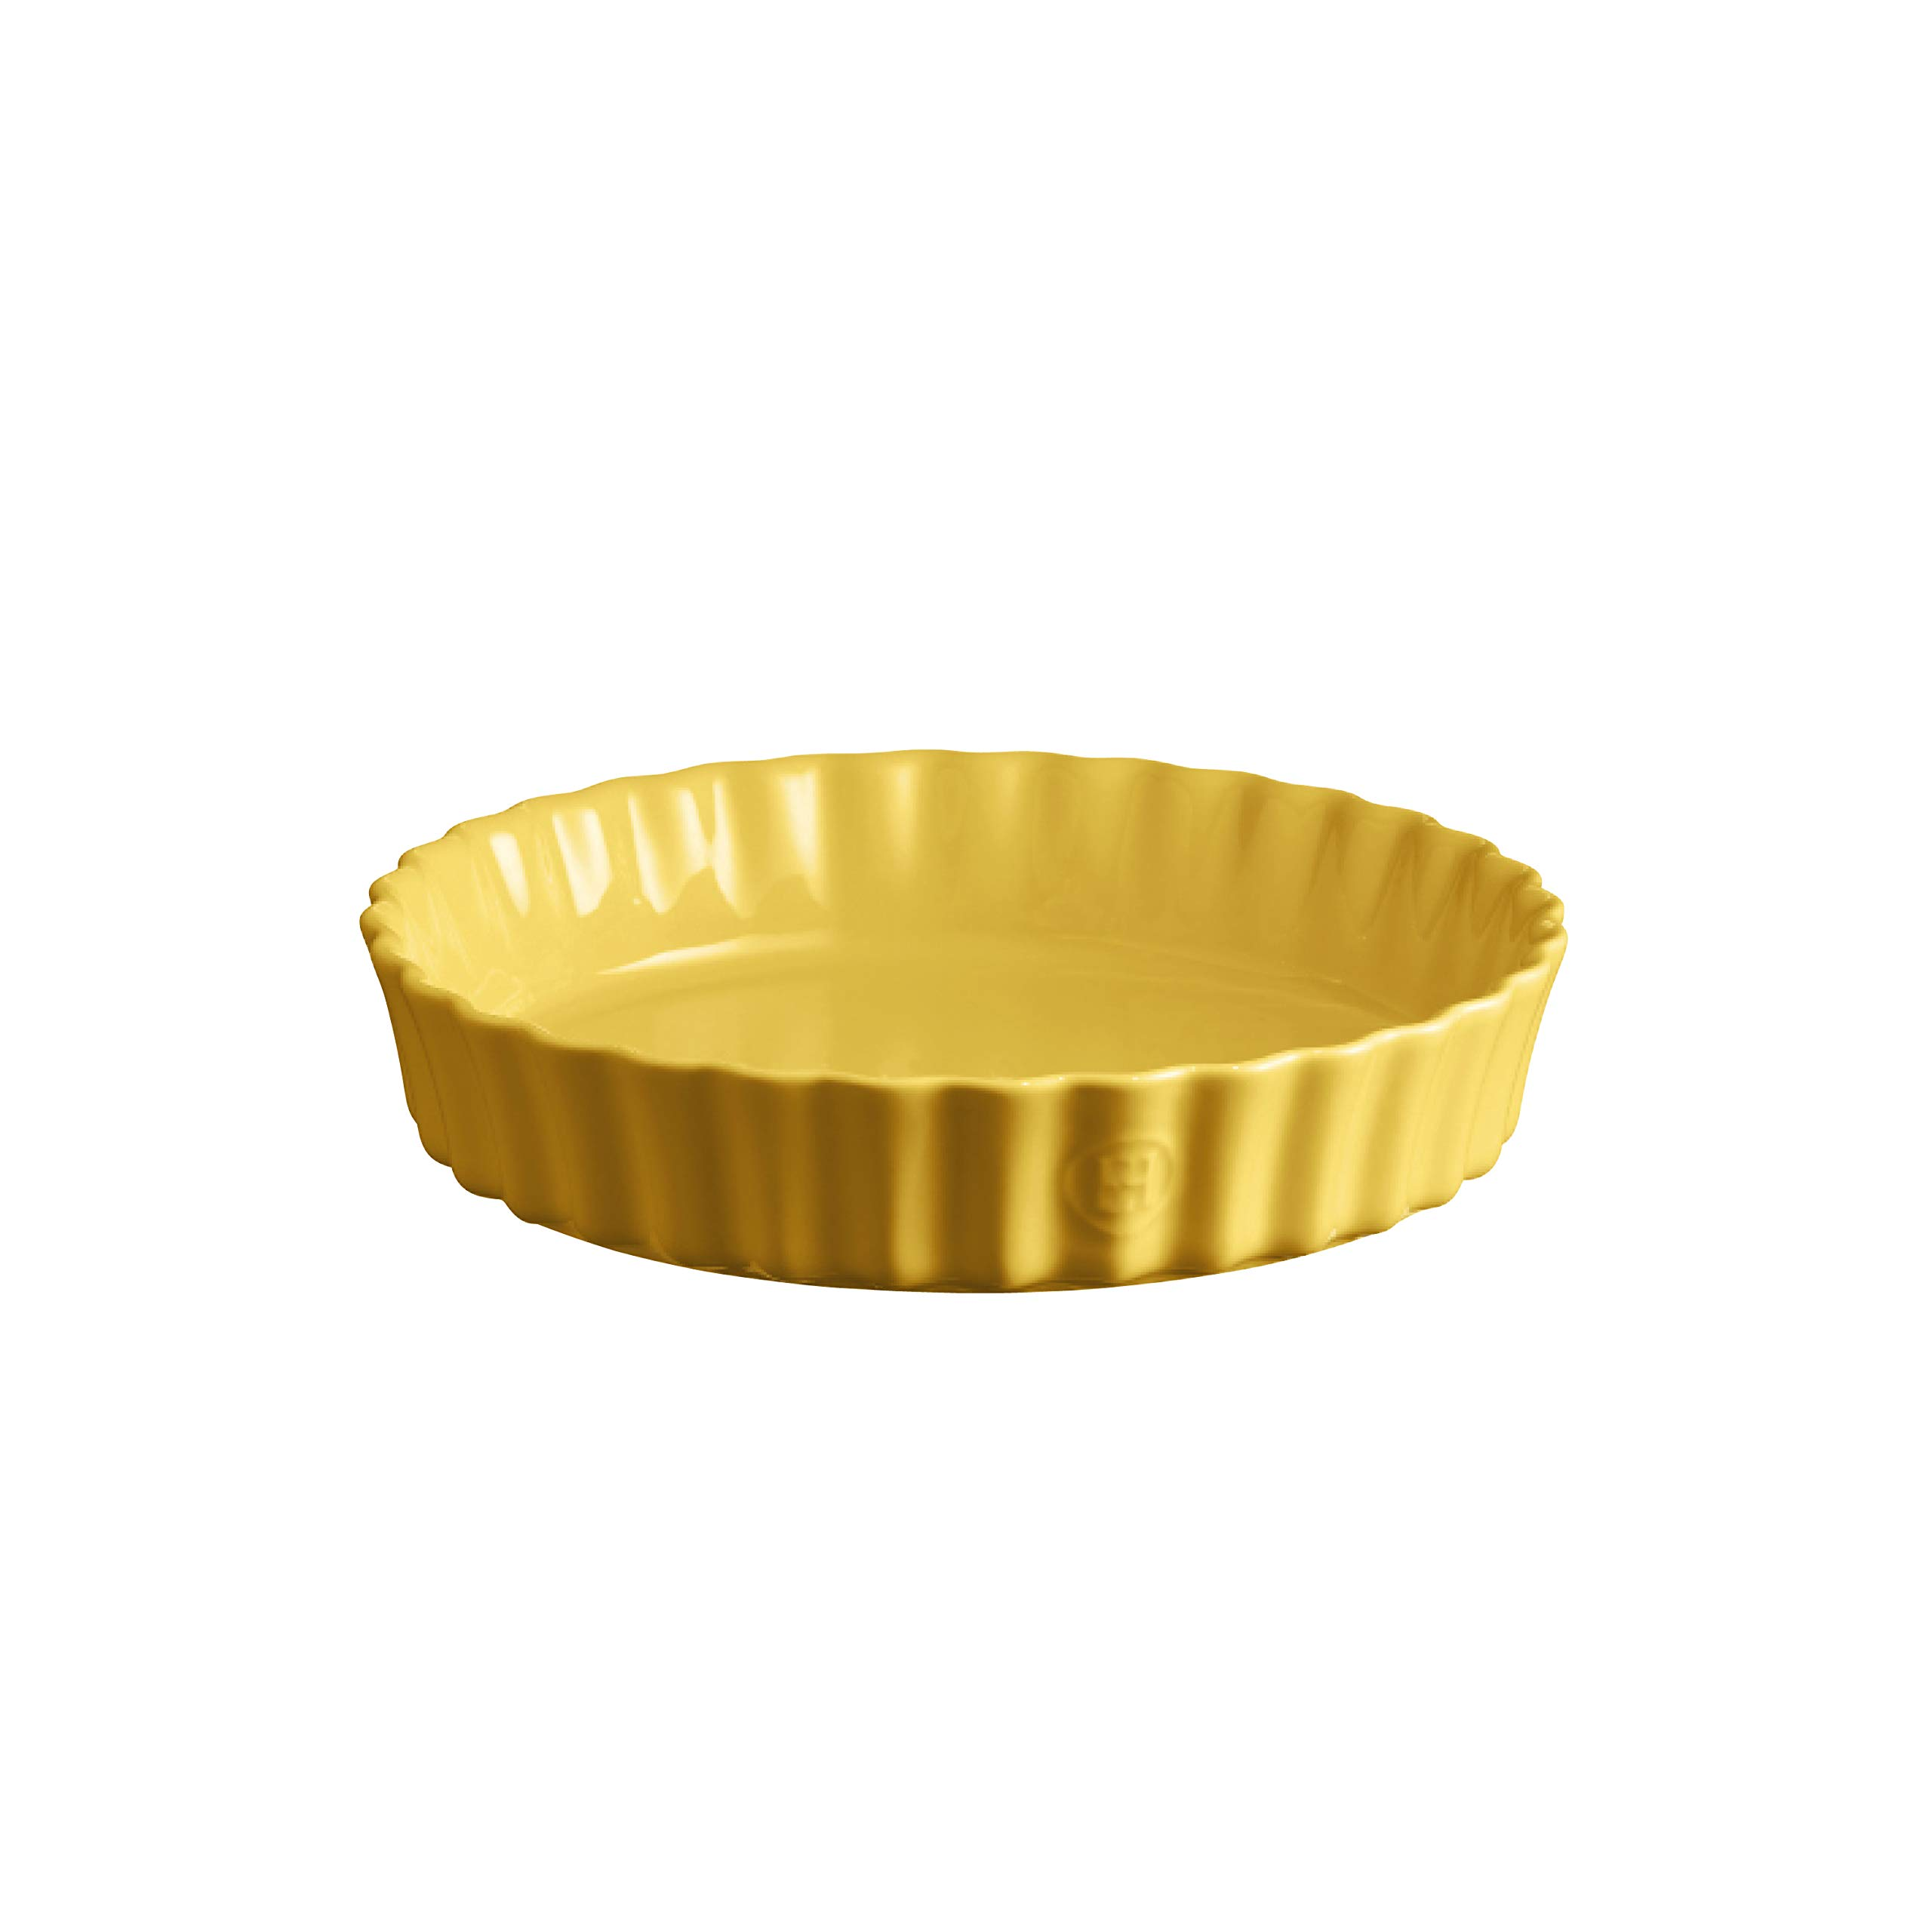 Emile Henry 906024 Deep Flan, Provence Yellow Quiche Dish, 1.2 qt by Emile Henry